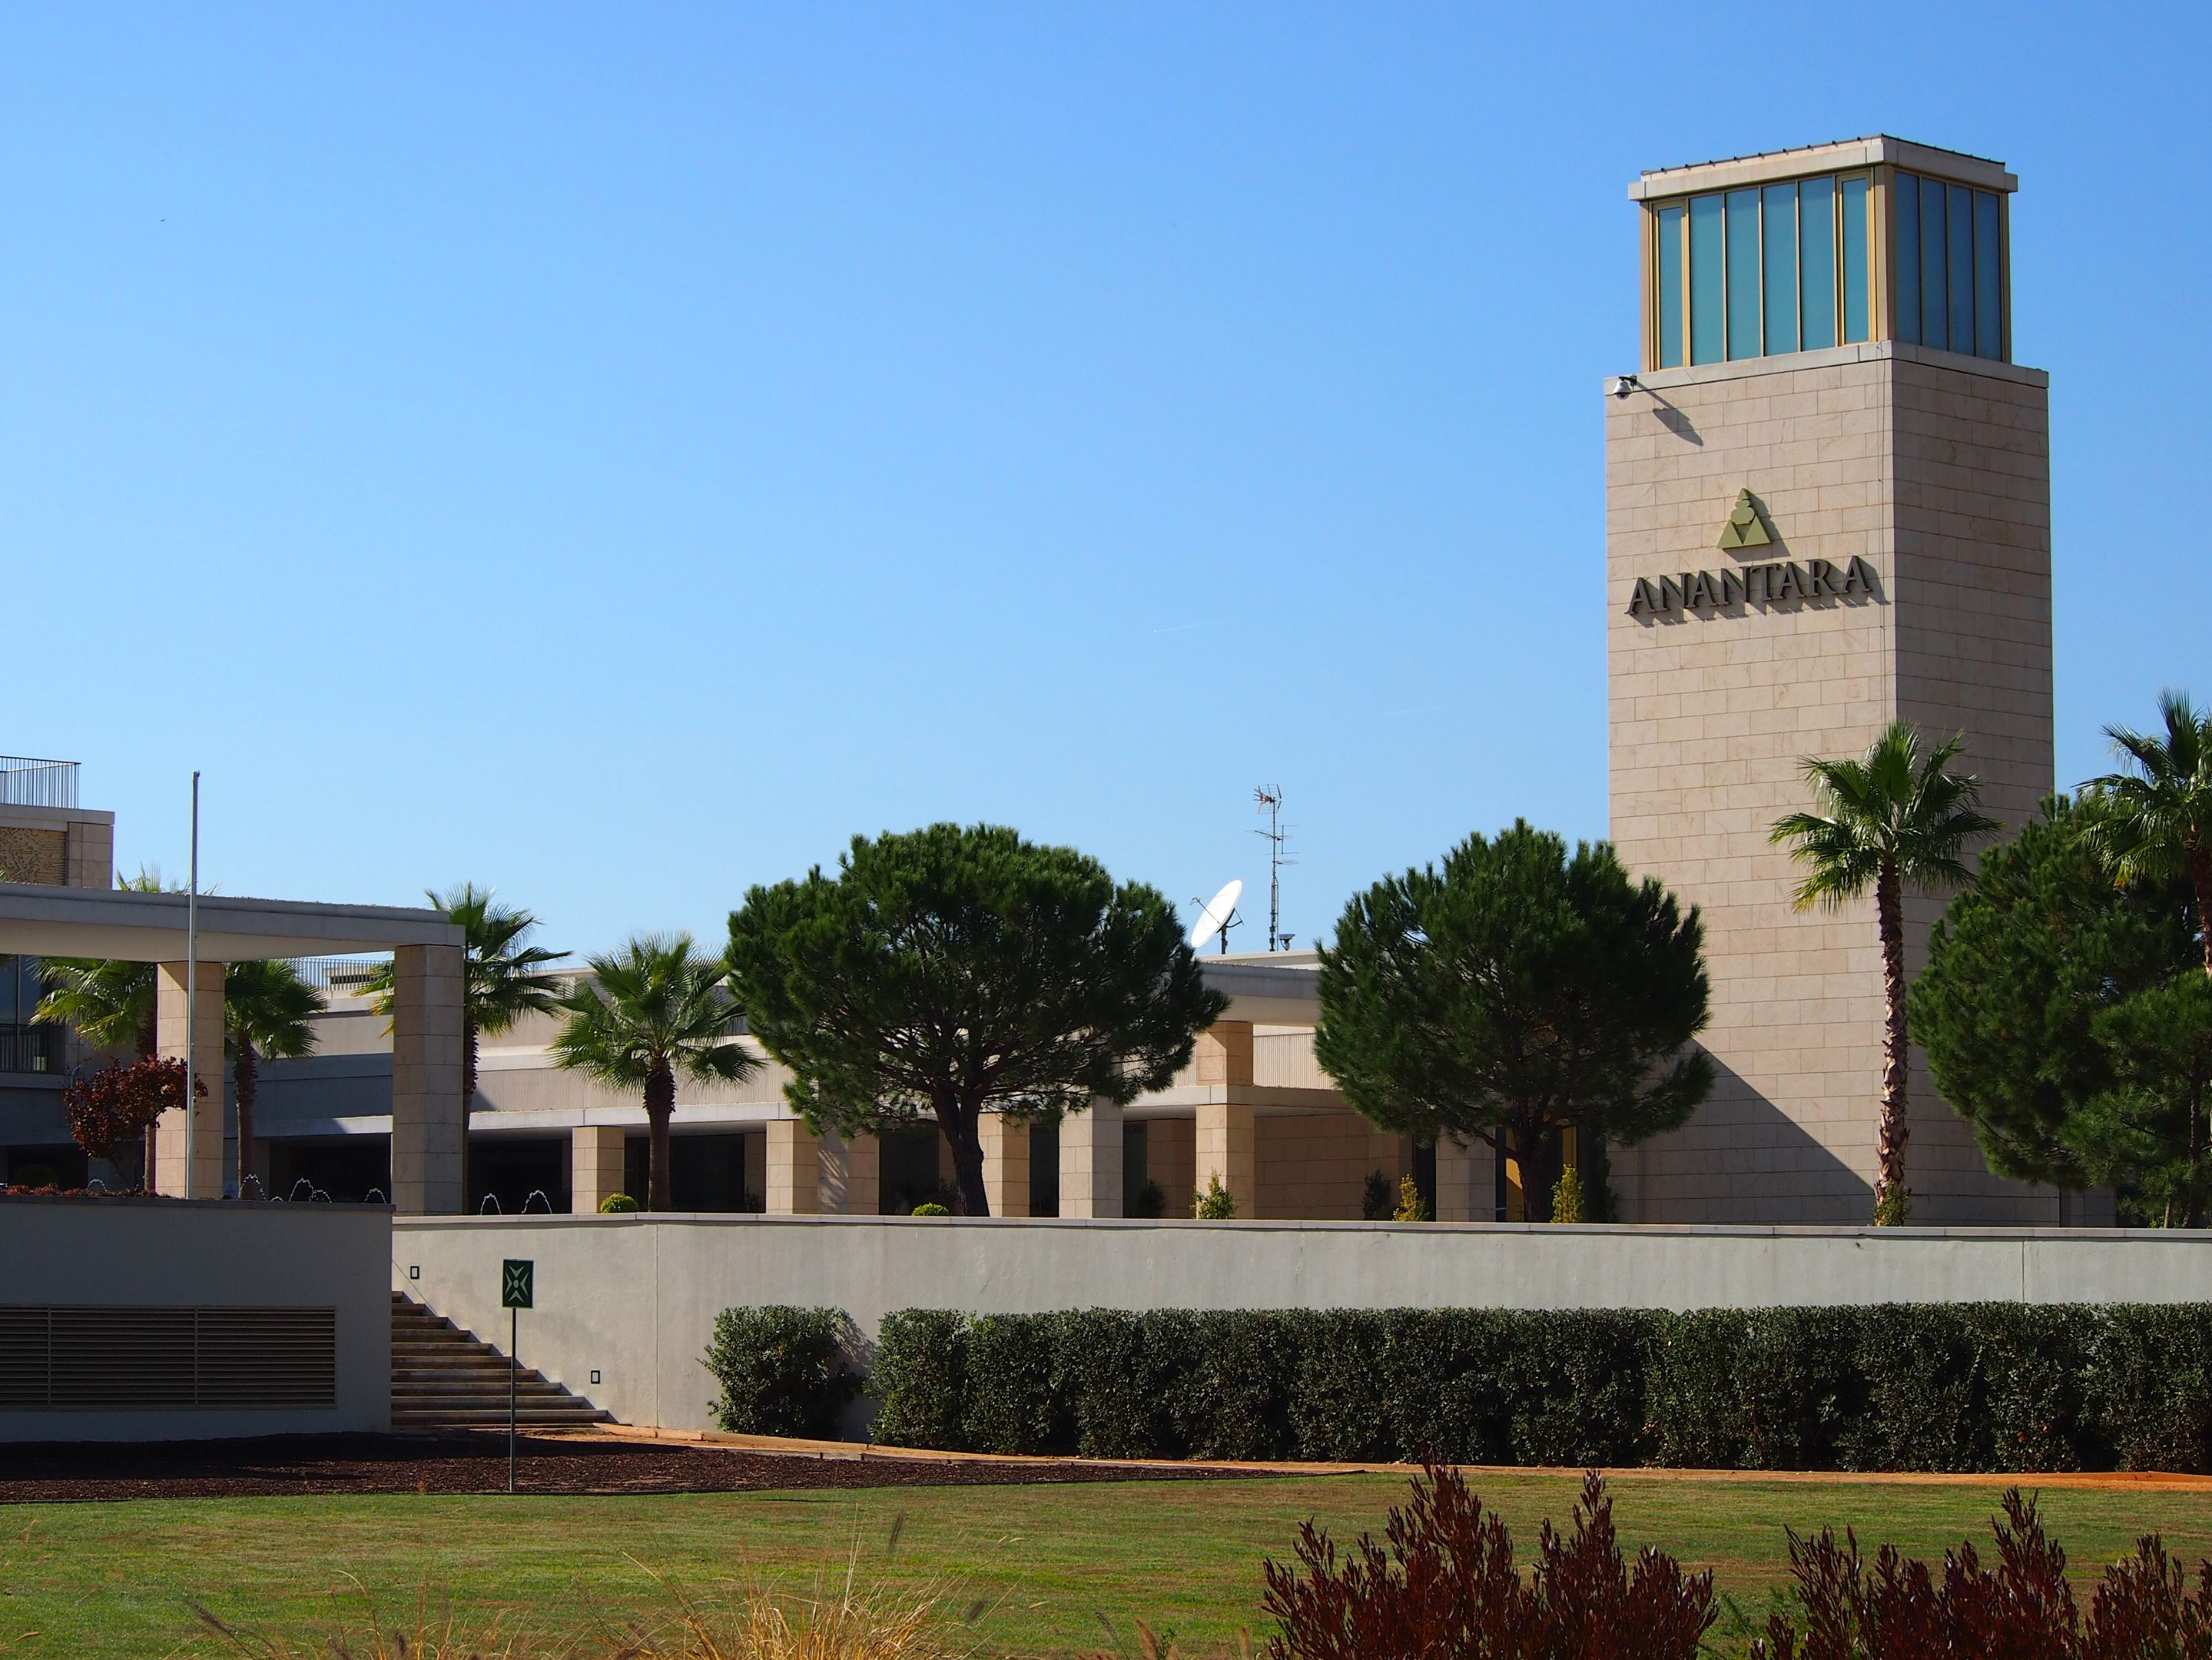 The Anantara Vilamoura hotel, Algarve, Portugal